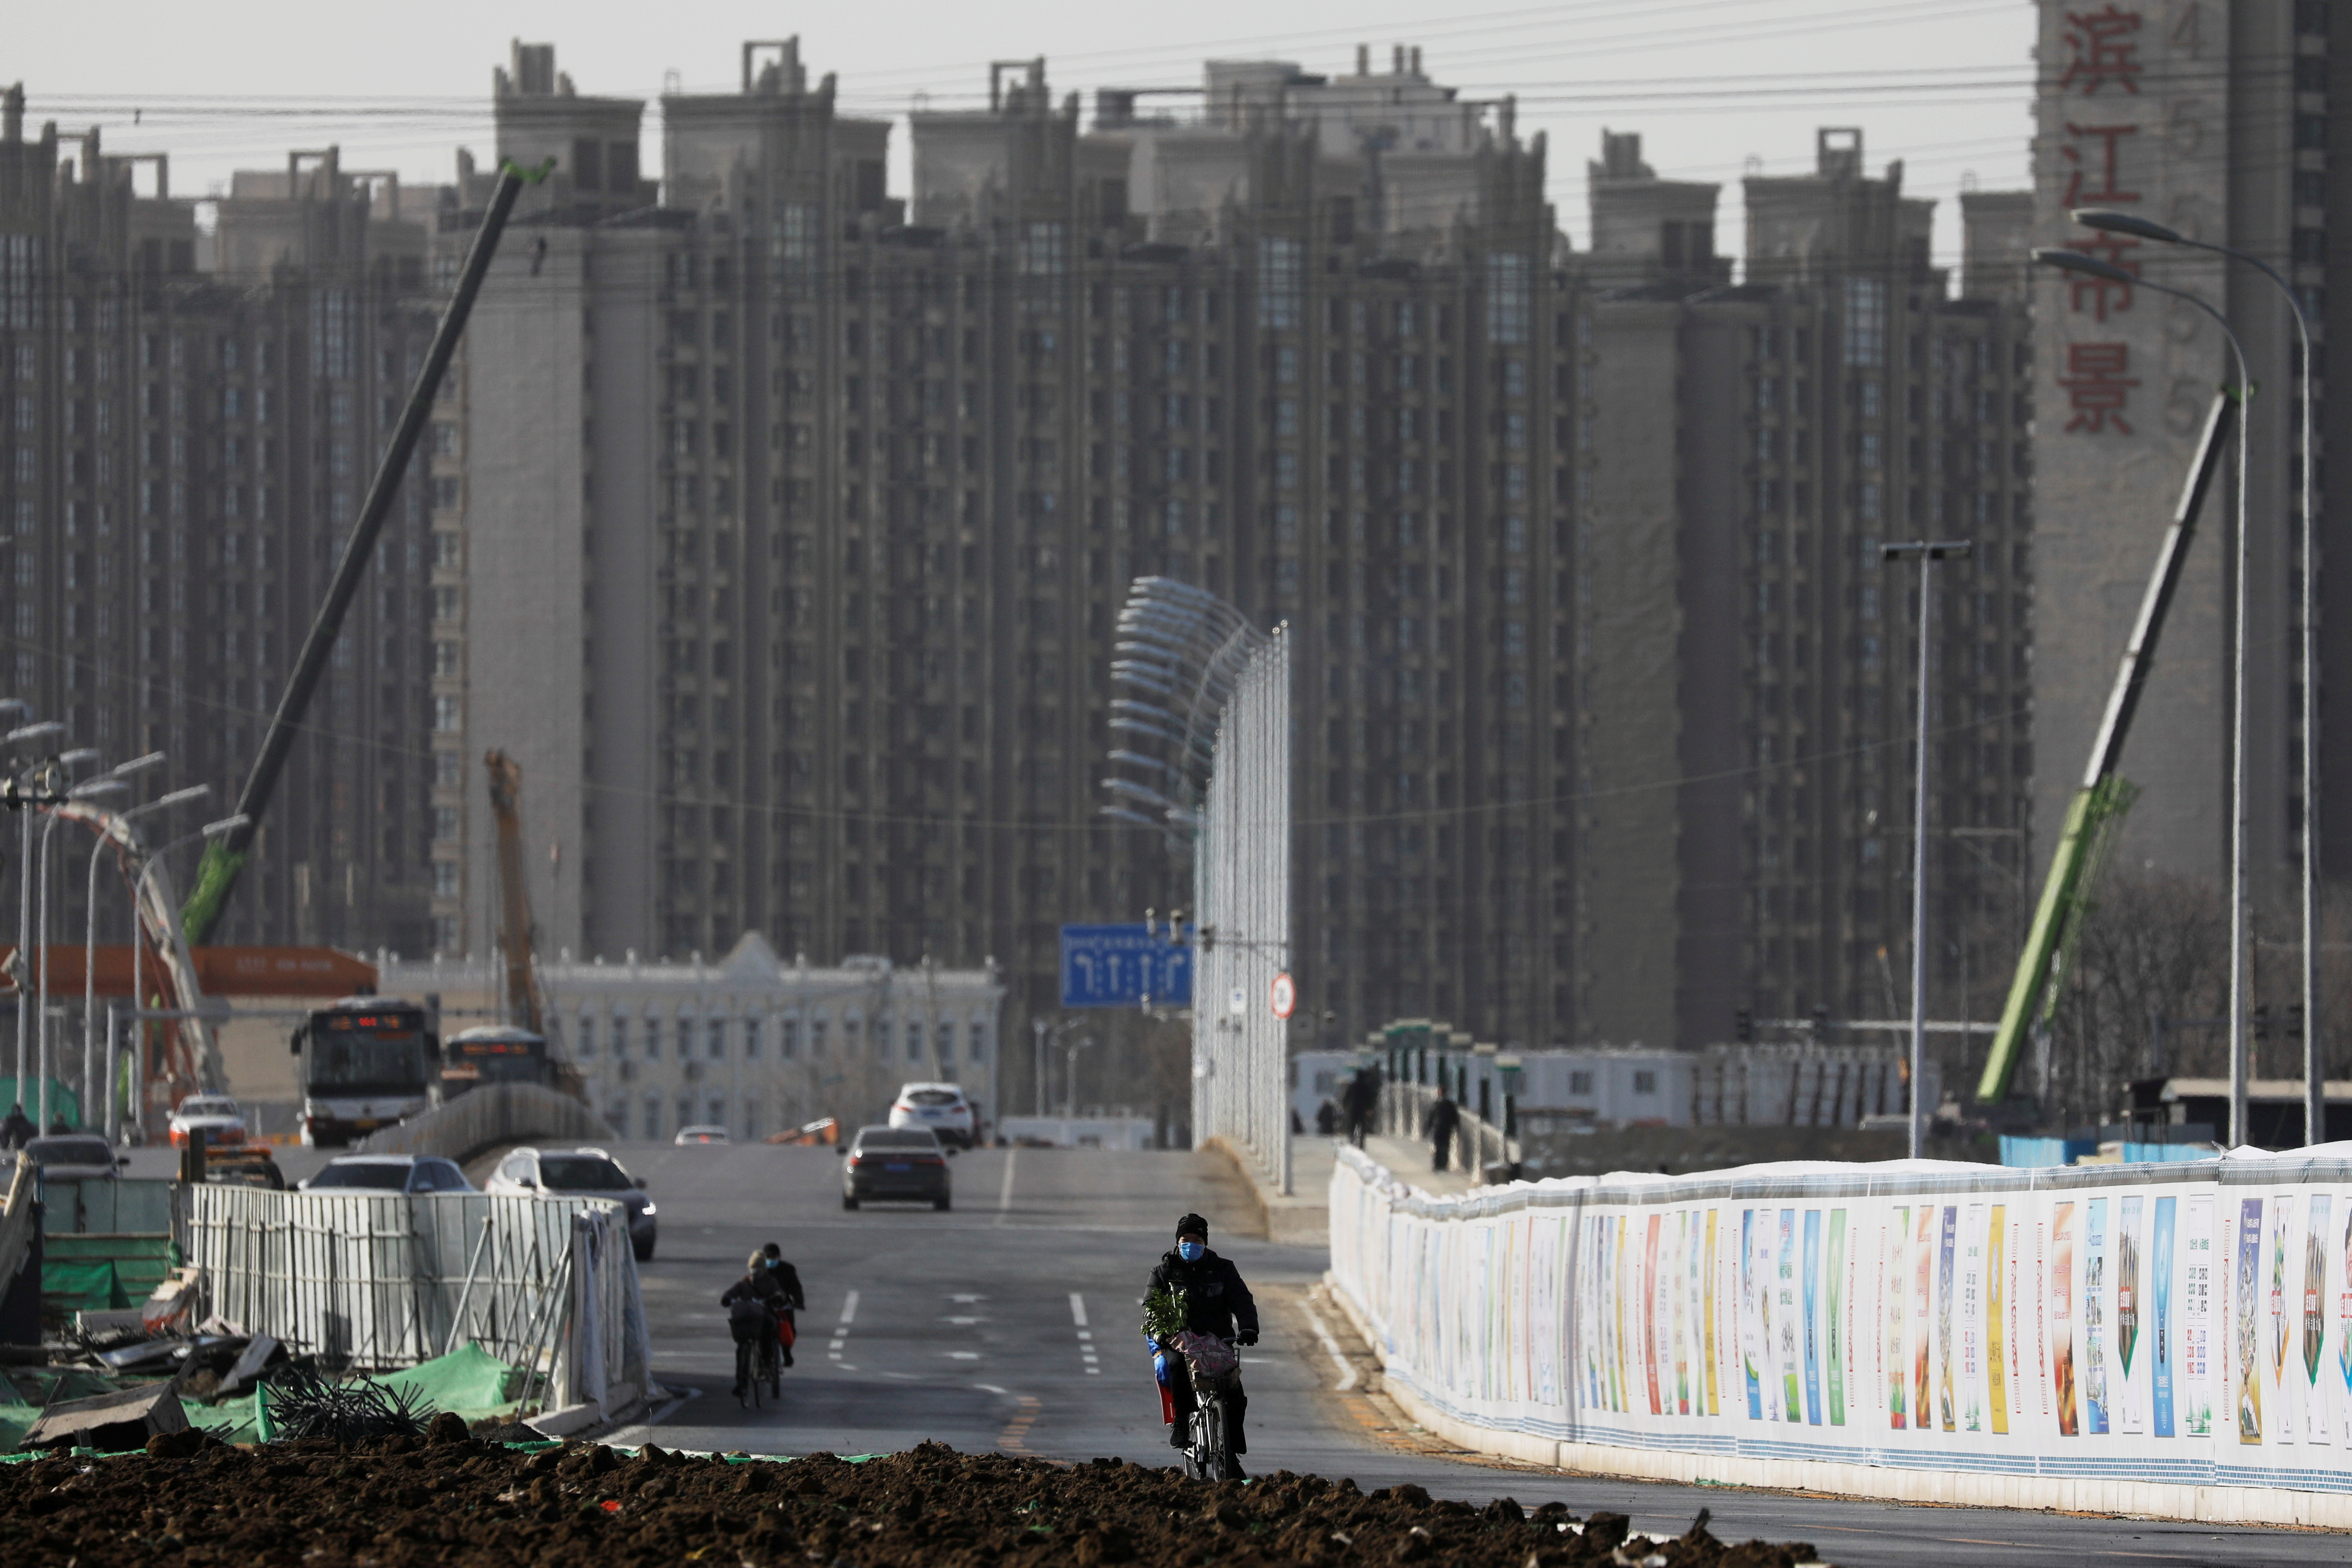 A man rides a bicycle next to a construction site near residential buildings in Beijing, China, January 13, 2021.  REUTERS/Tingshu Wang/File Photo